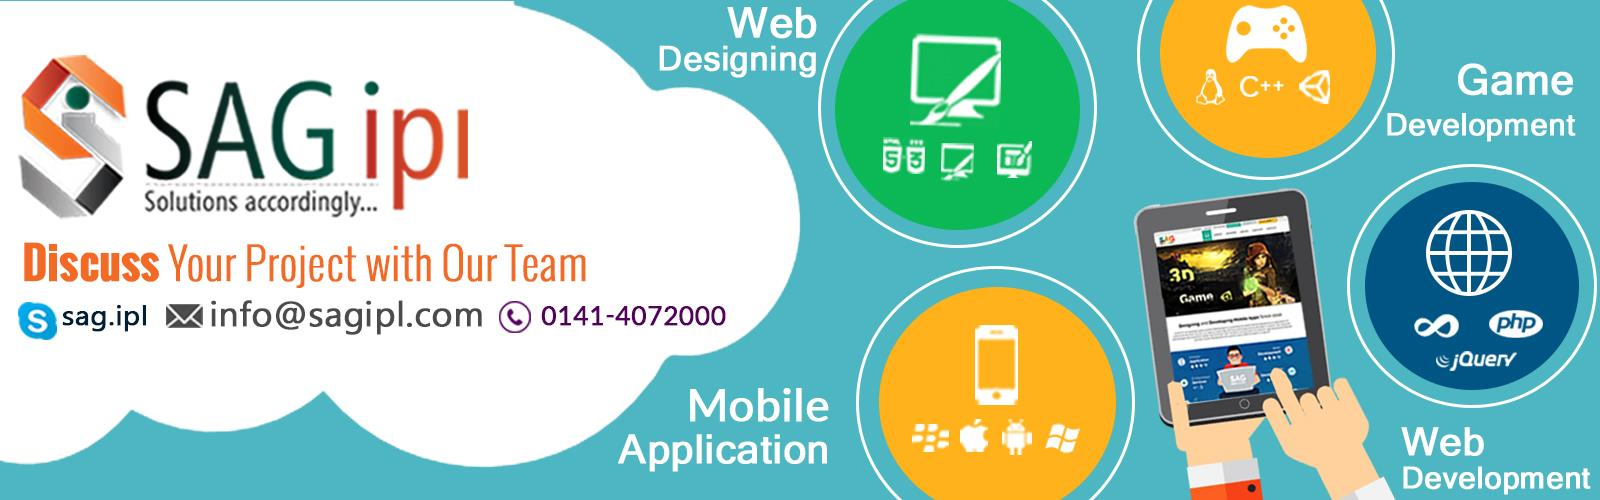 Web, Apps and Game Application Development - SAGIPL